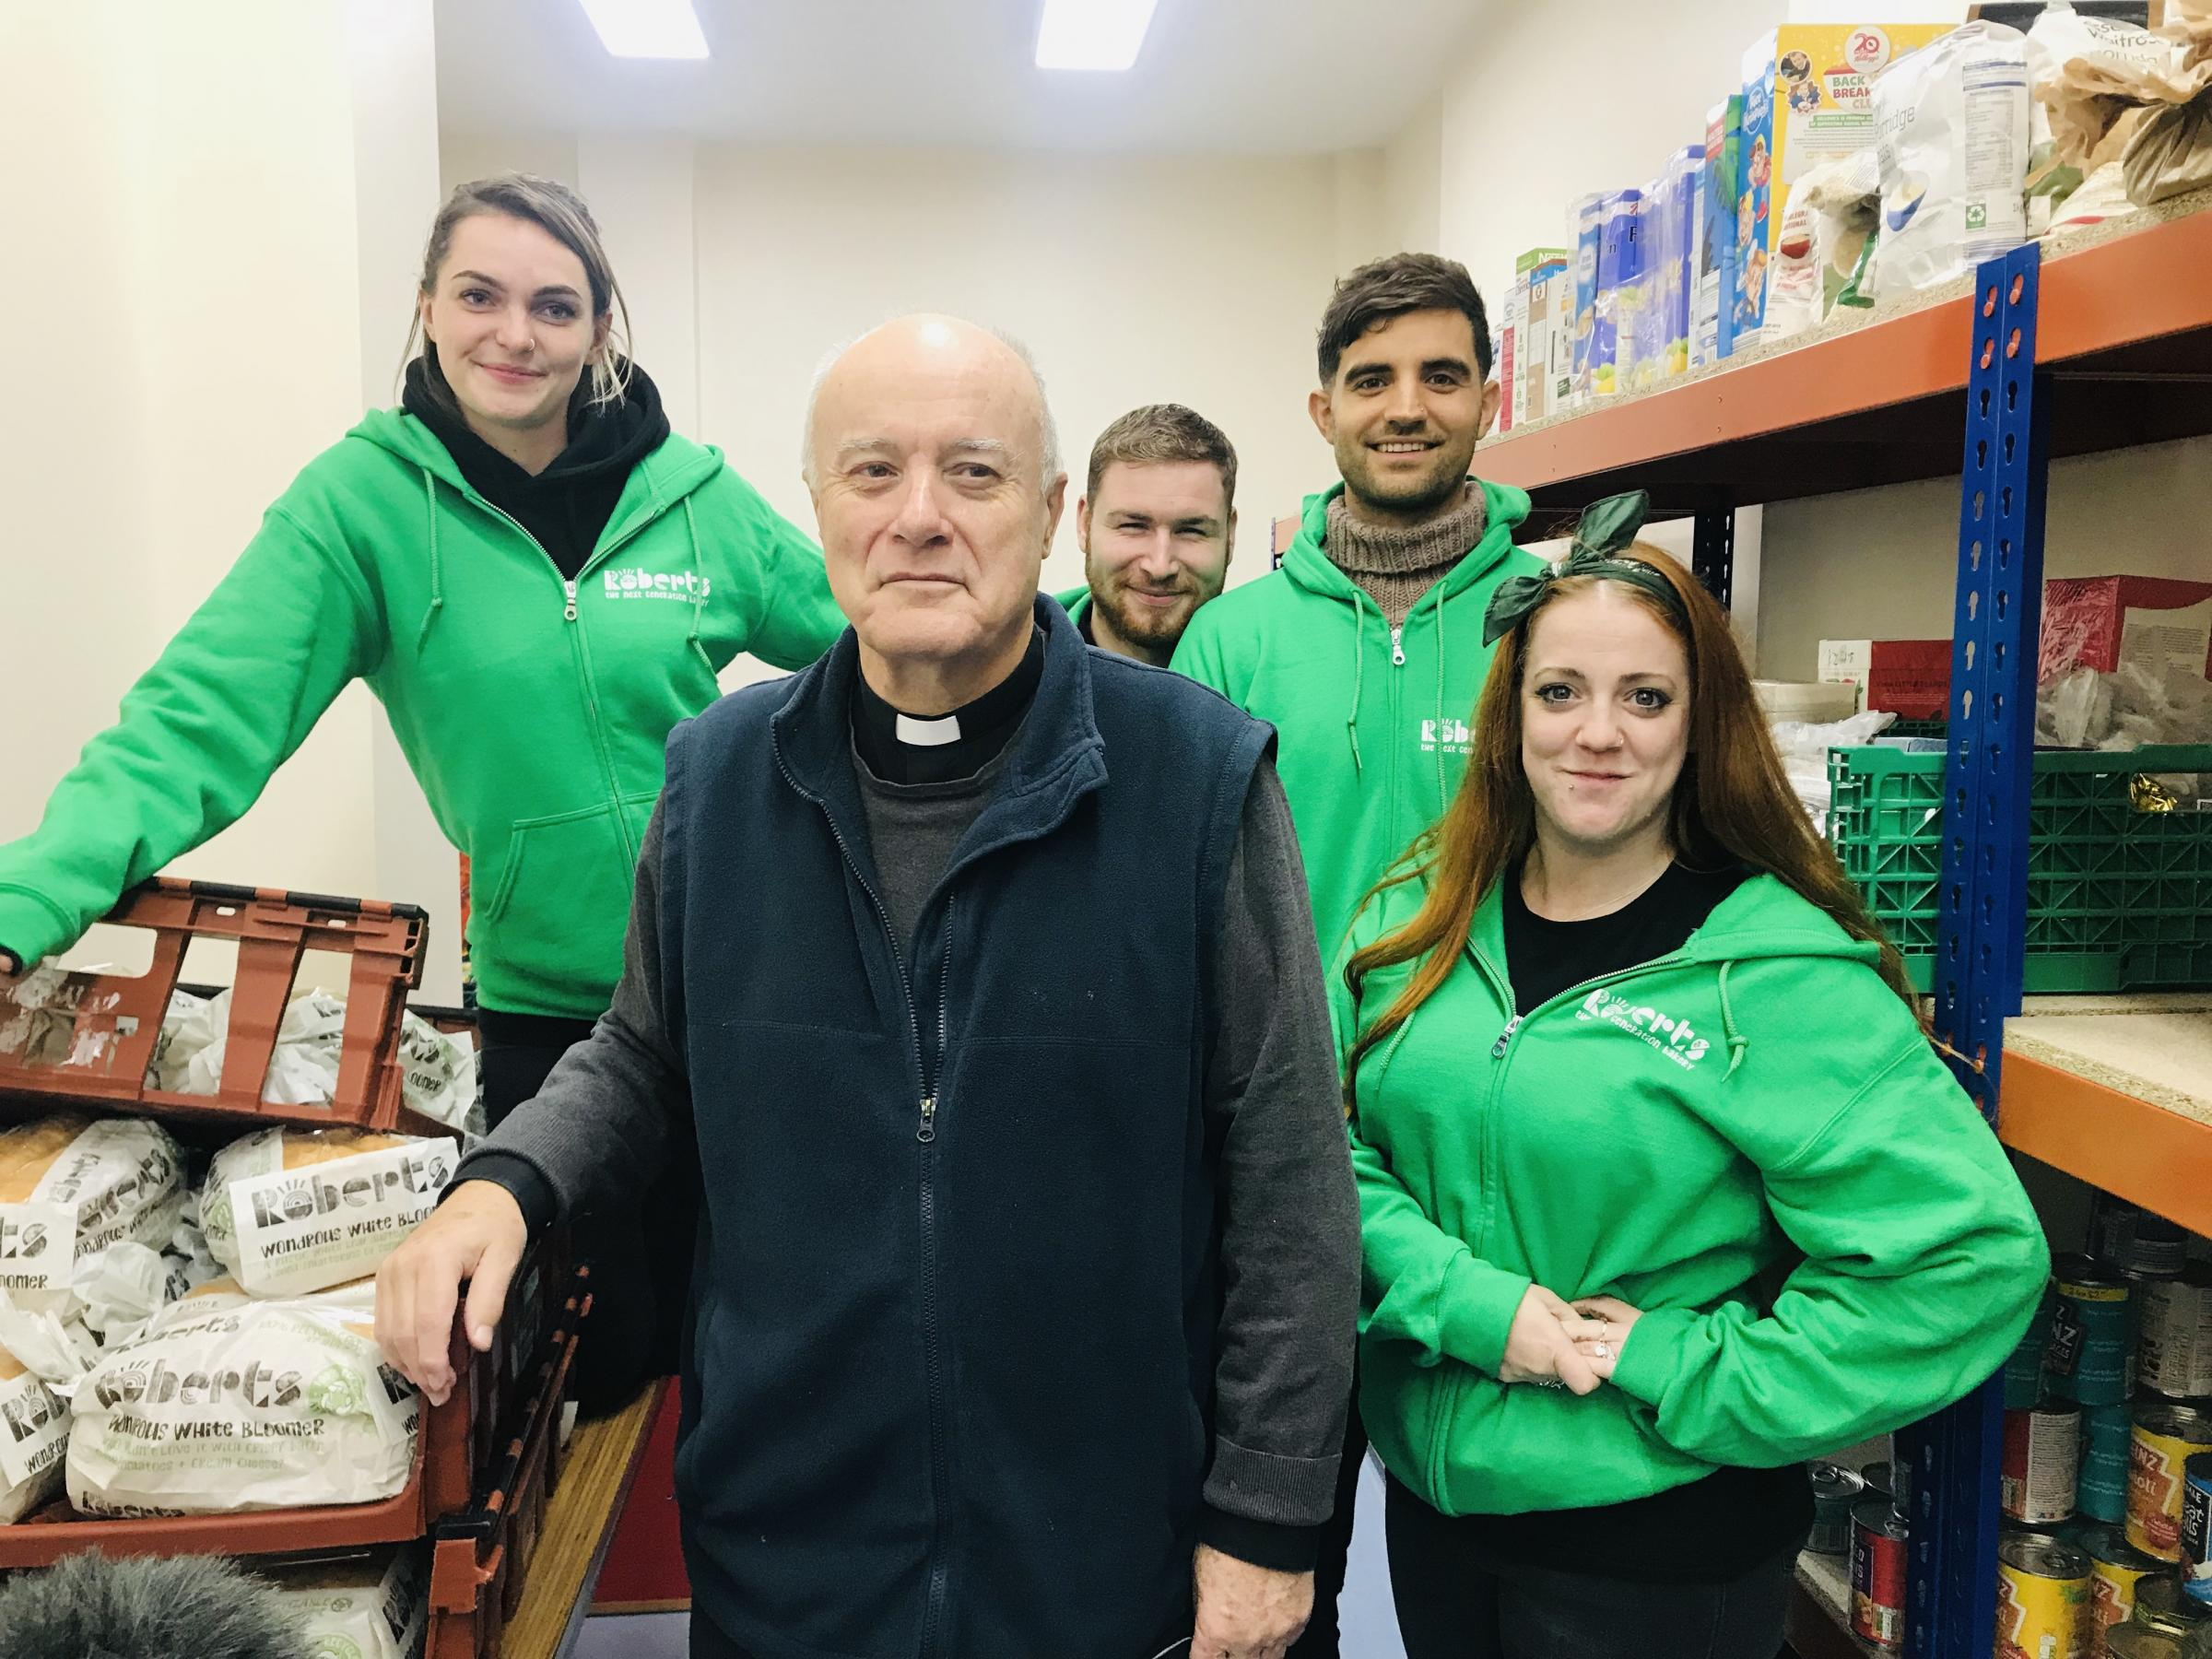 Volunteers from Roberts Bakery rose to the occasion to give their repackaged loaves over to the Finchley foodbank in High Road, East Finchley